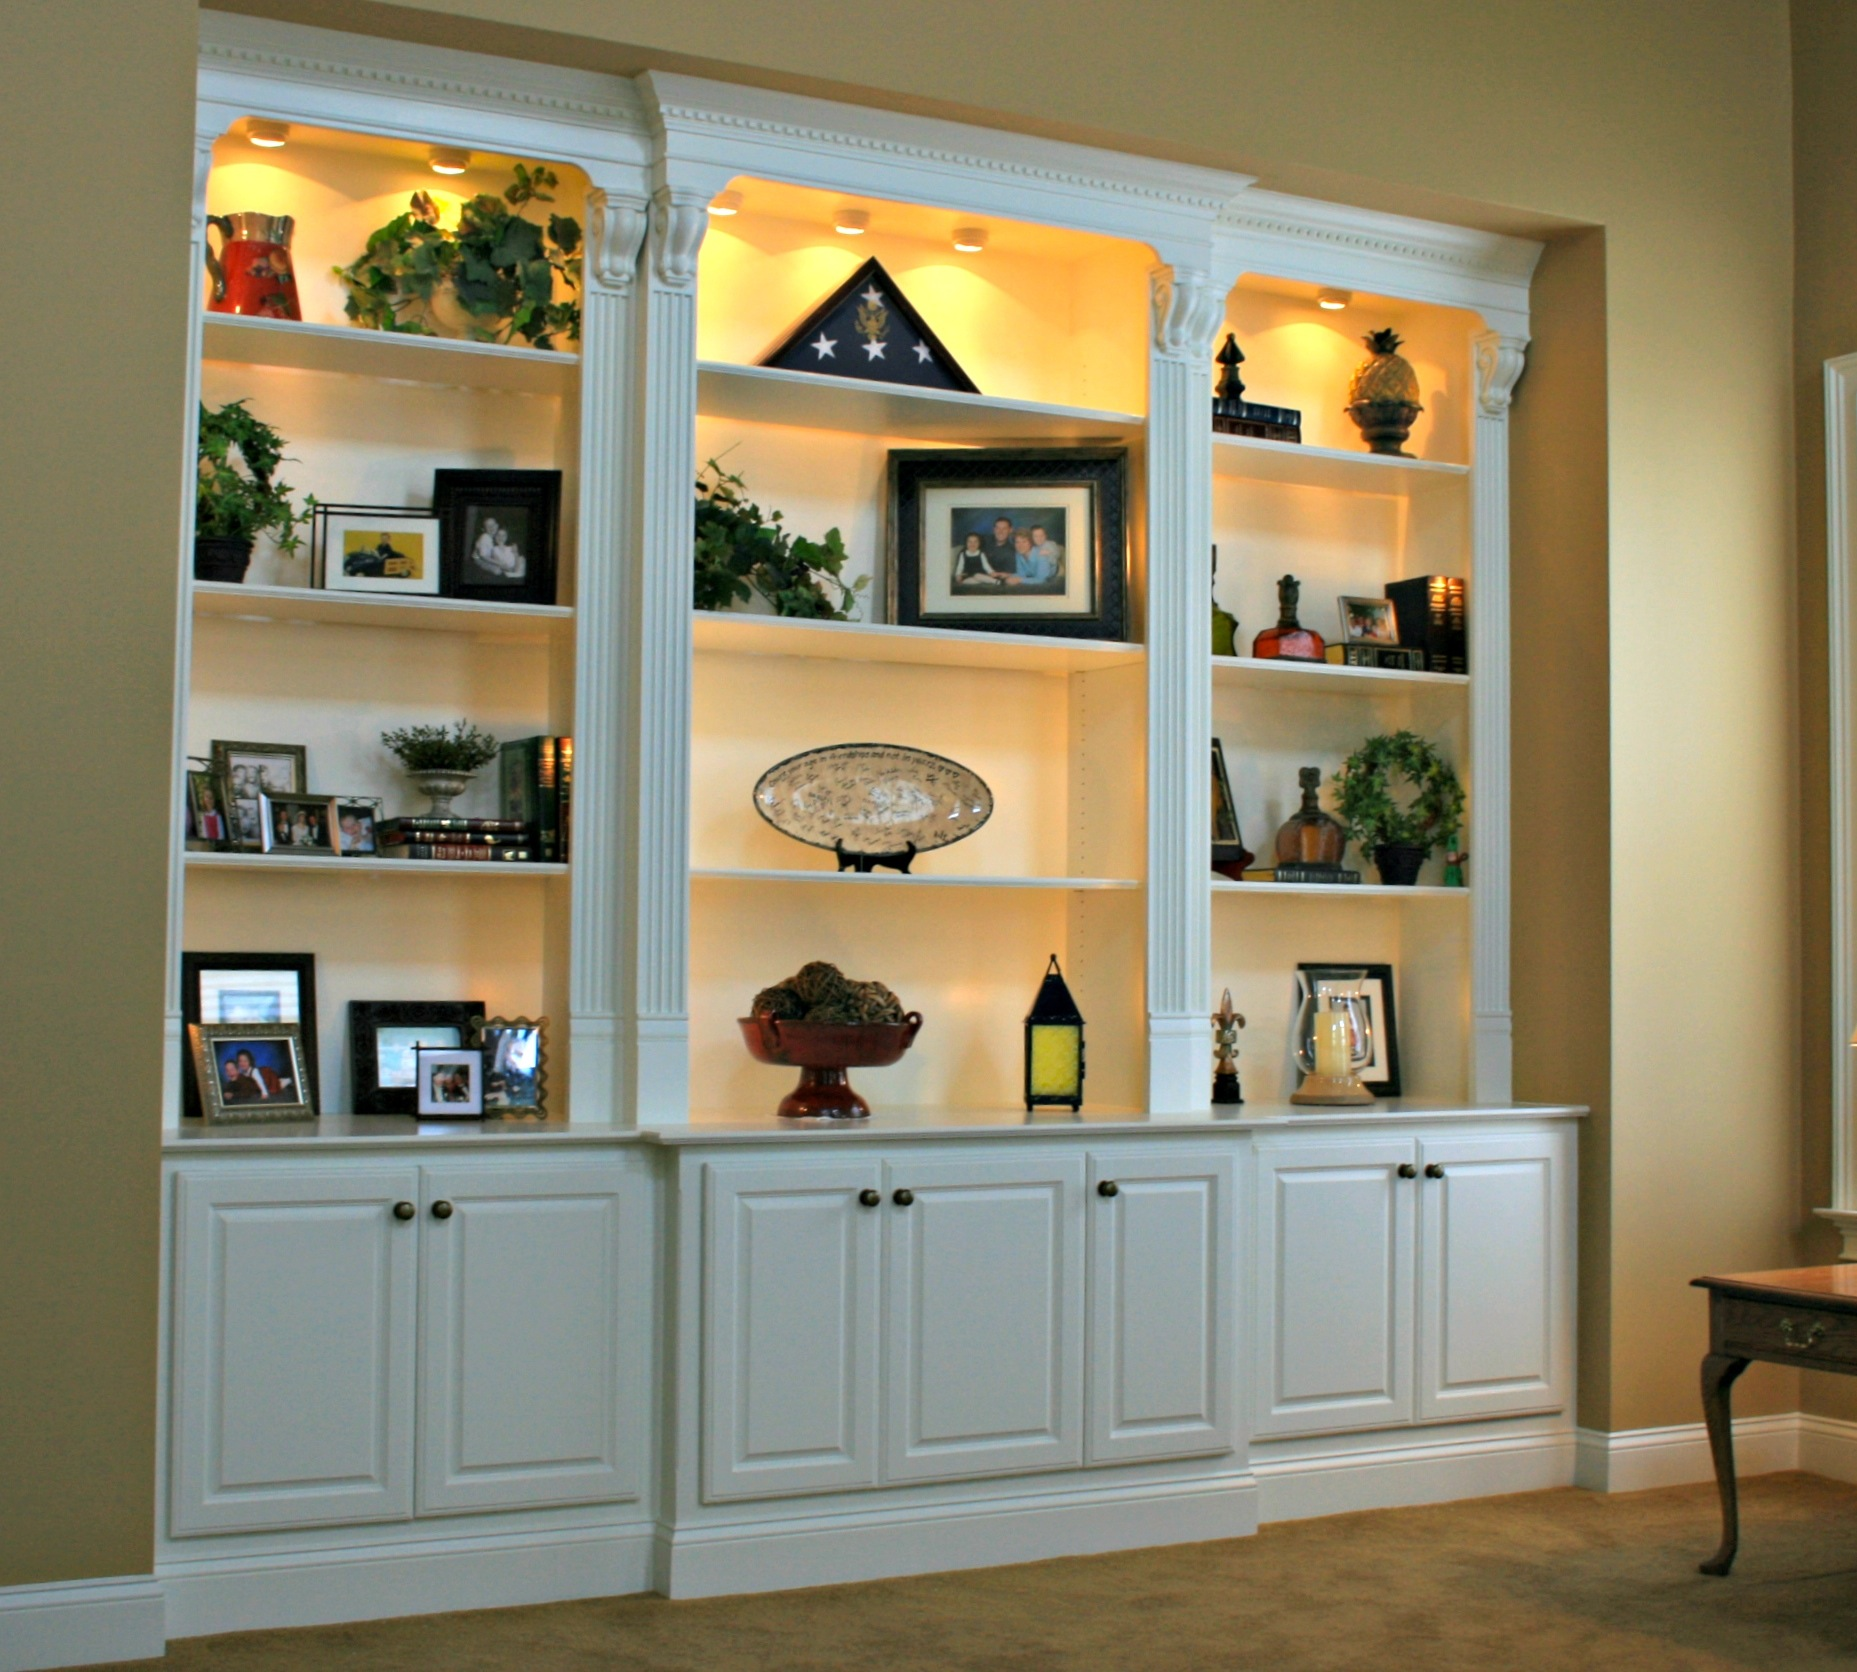 display-cabinets-7 & Display Cabinets are designed and built by Deacon Home Enhancement